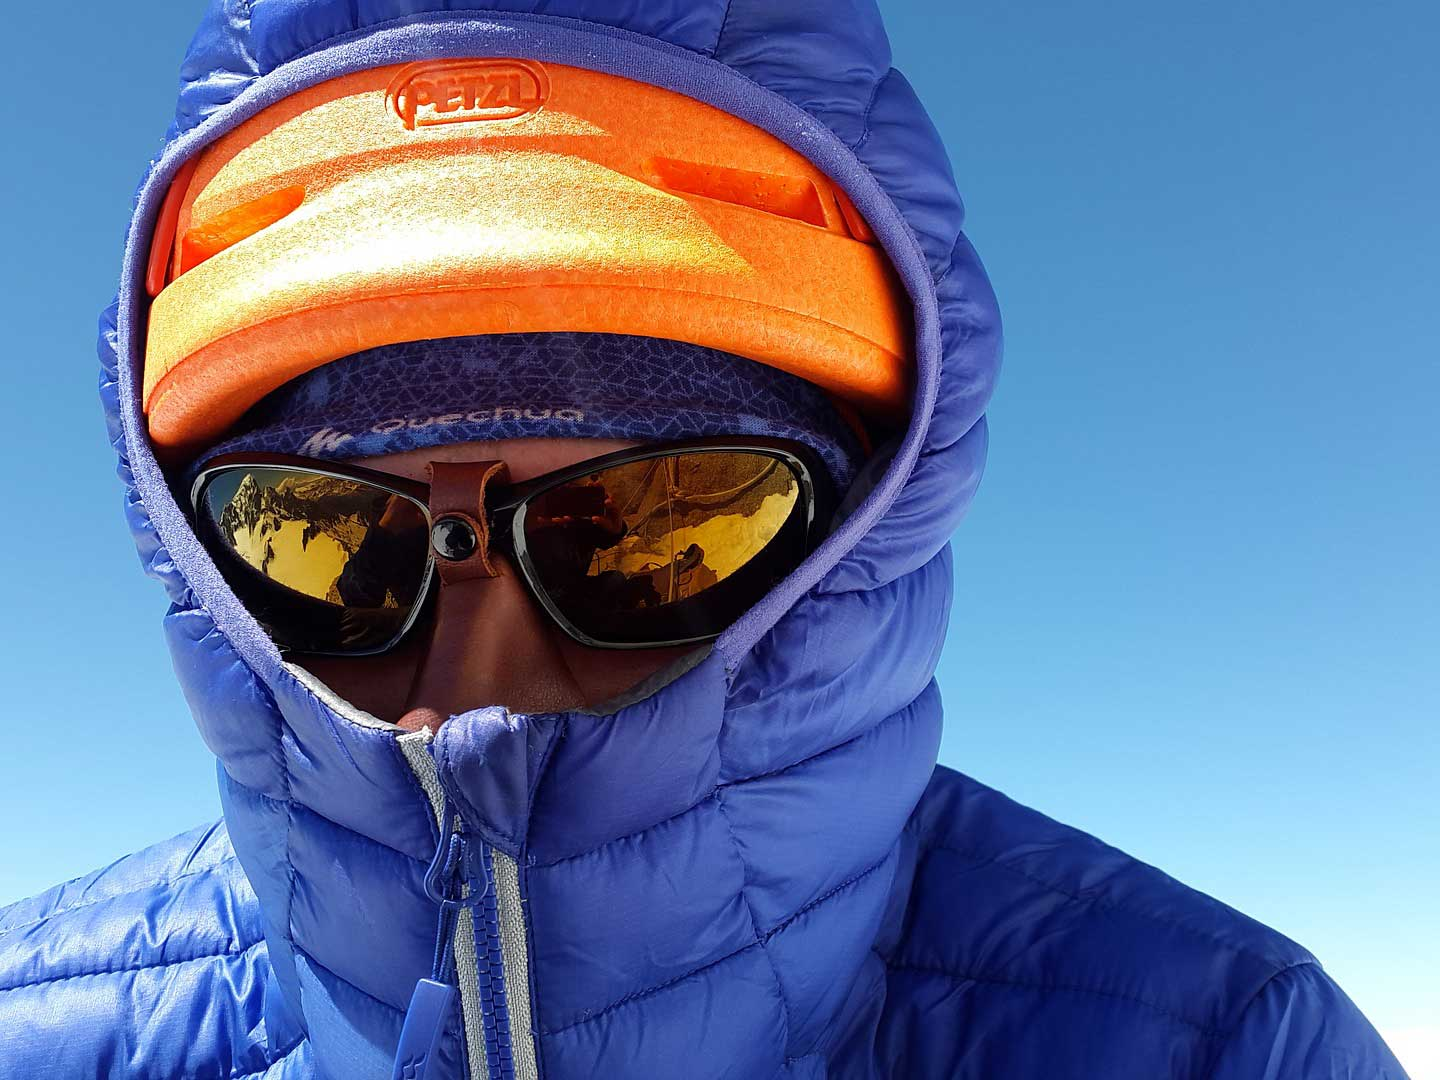 Person wearing a blue parka, orange hat, and glacier glasses.